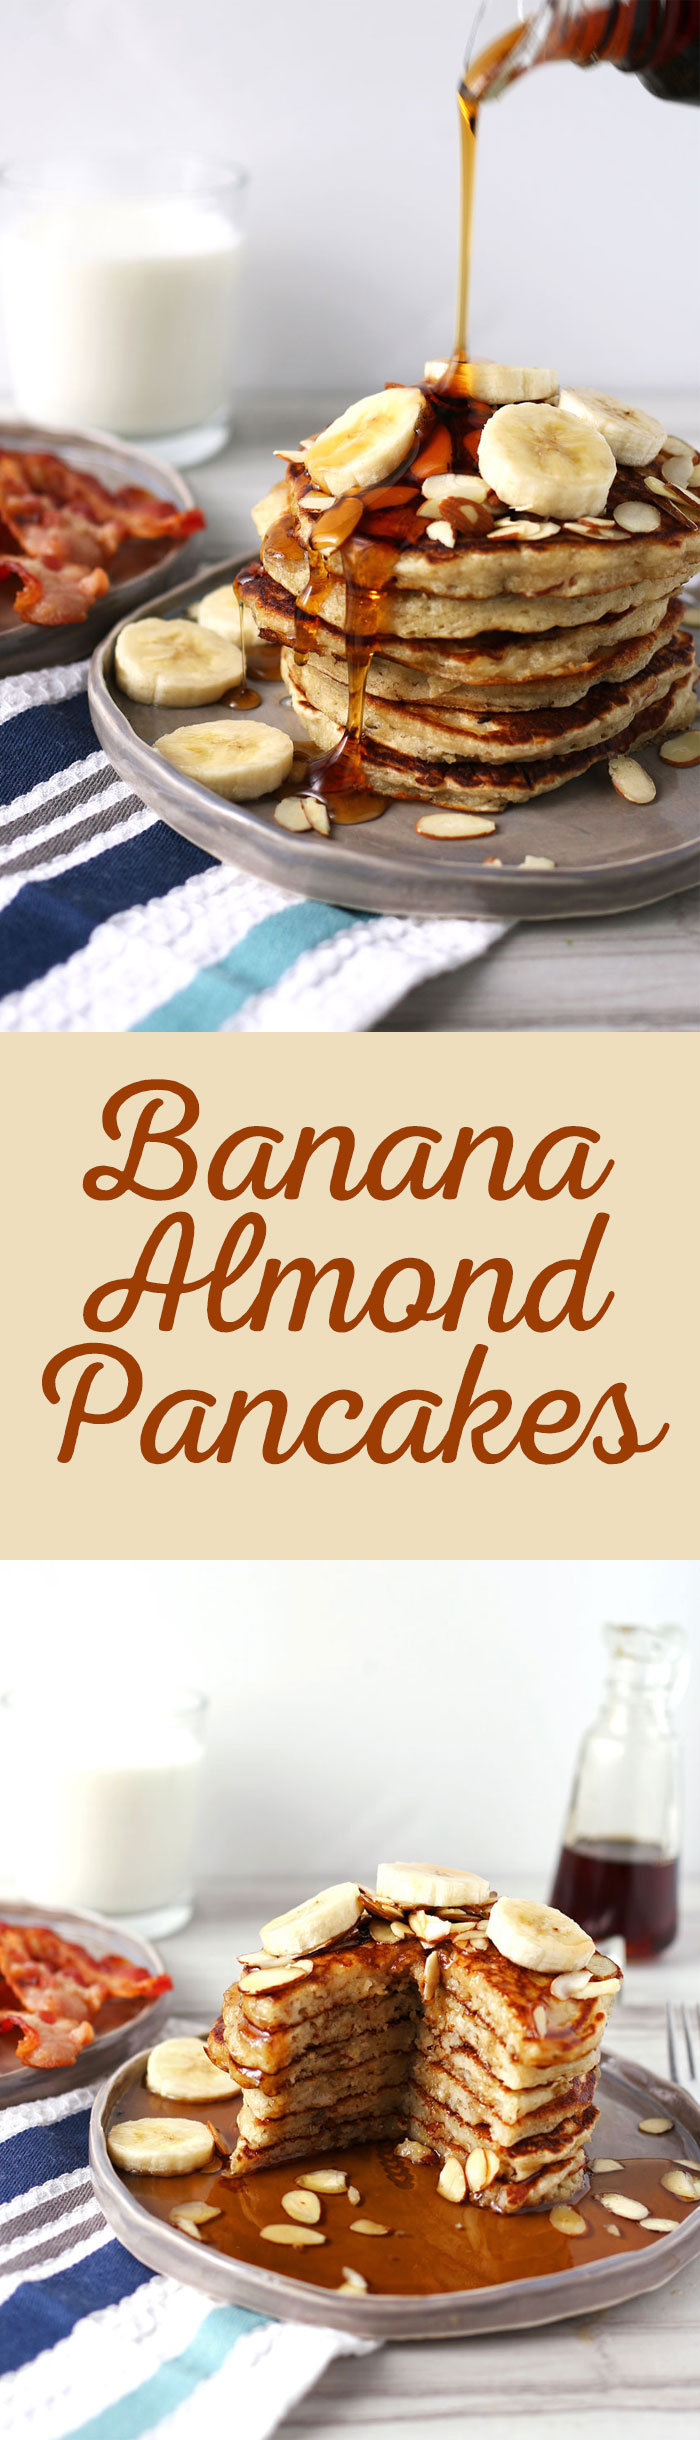 Make these delicious Banana Almond Pancakes for your next brunch or Saturday morning breakfast! Get the recipe at craftaholicsanonymous.net